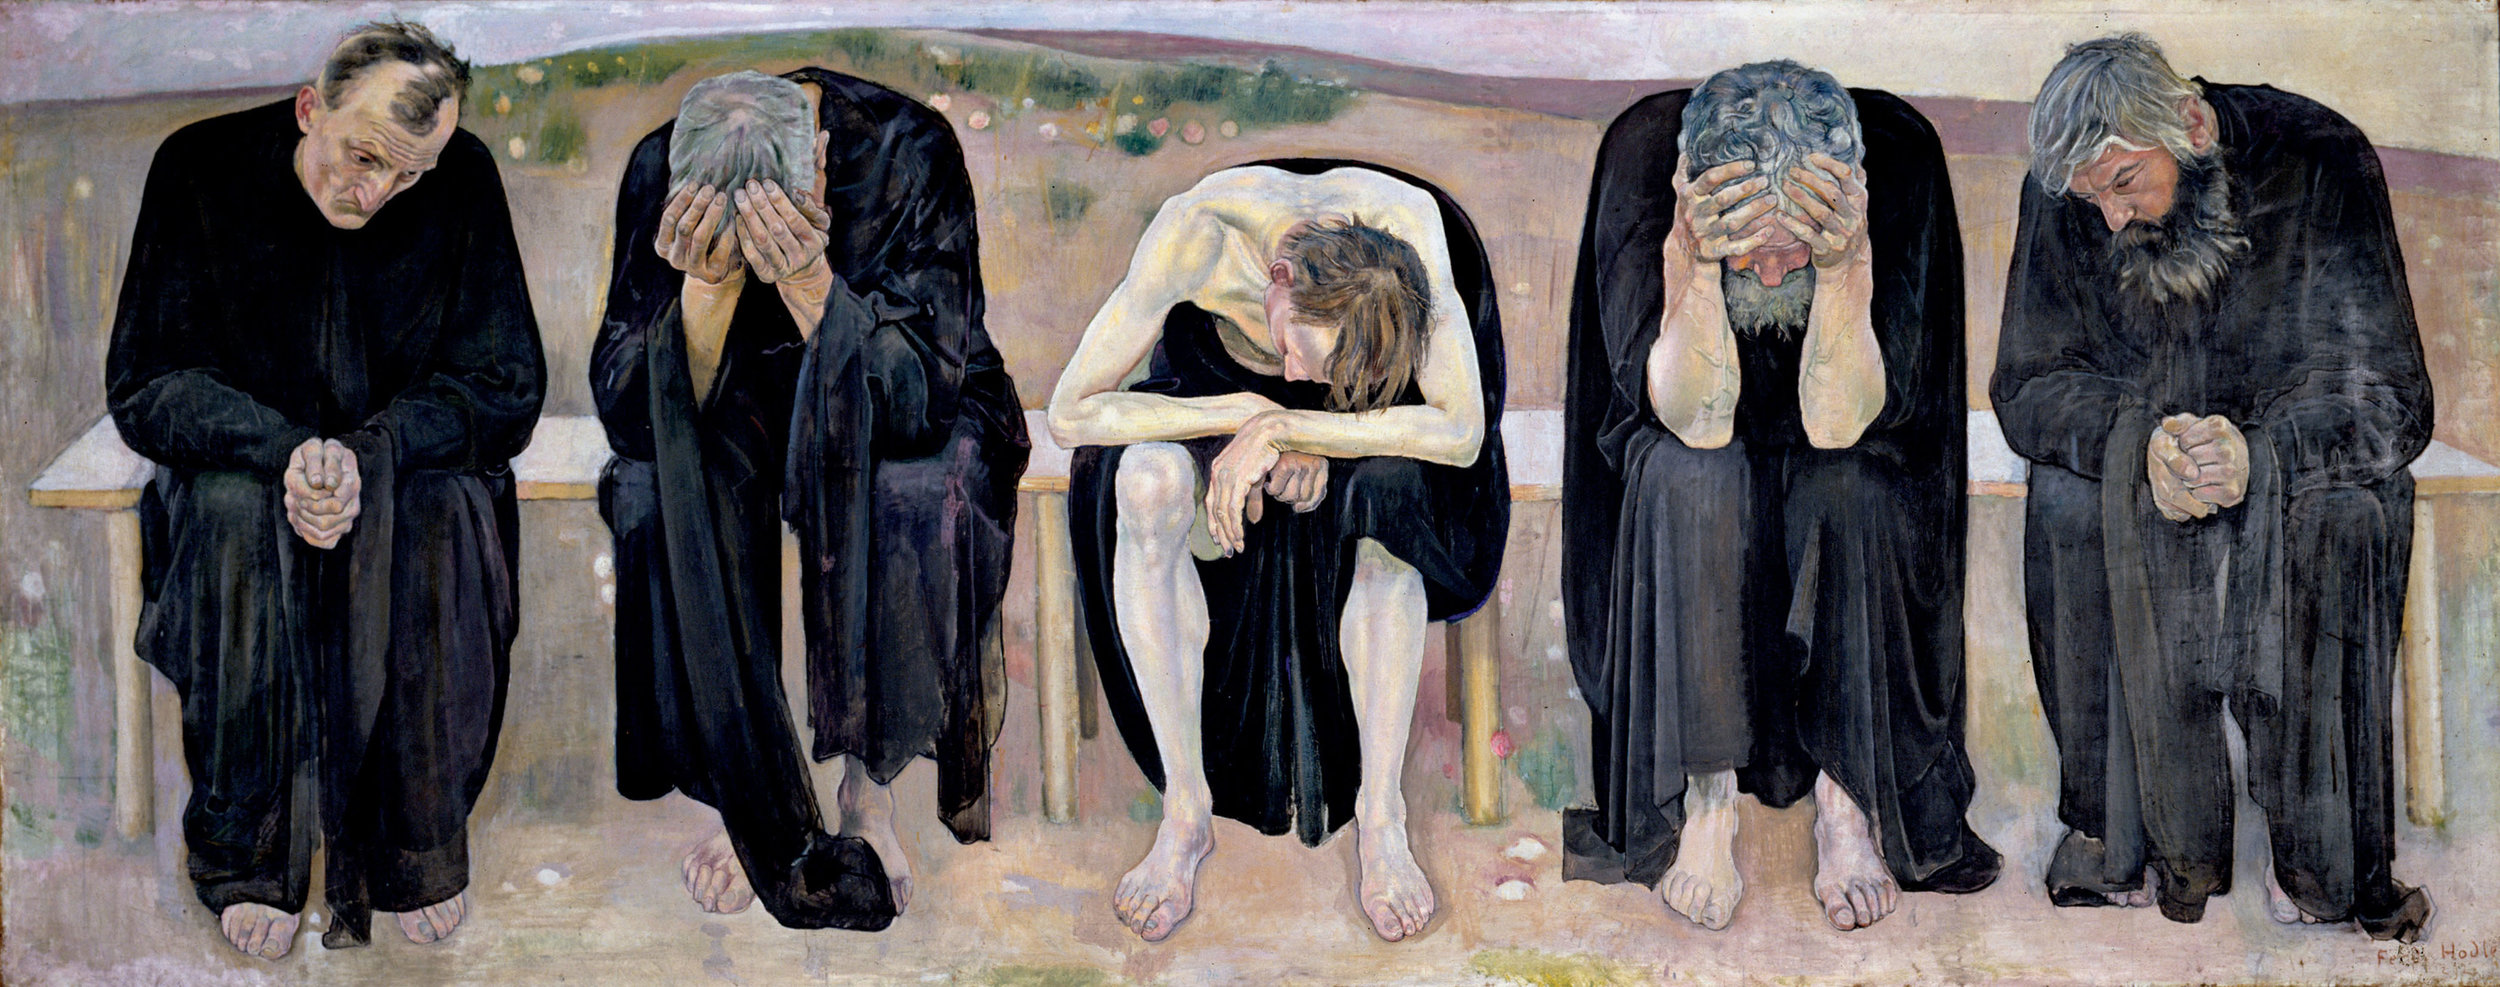 """Community gives us warmth, singleness gives us light.""   Carl Jung,  The Red Book   (Ferdinand Hodler's  Disappointed Souls )"